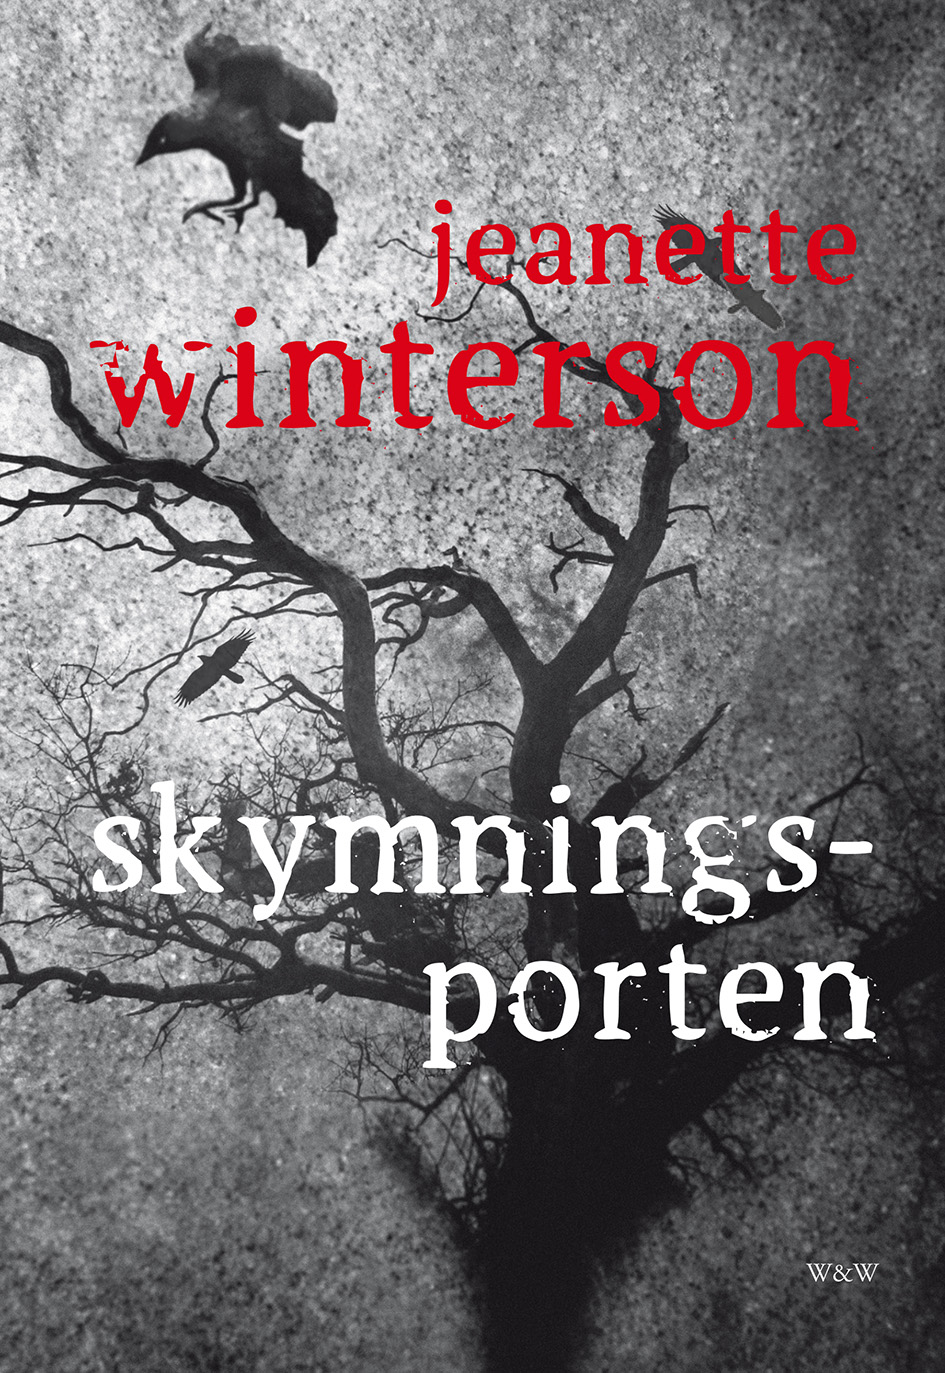 Recension: Skymningsporten av Jeanette Winterson